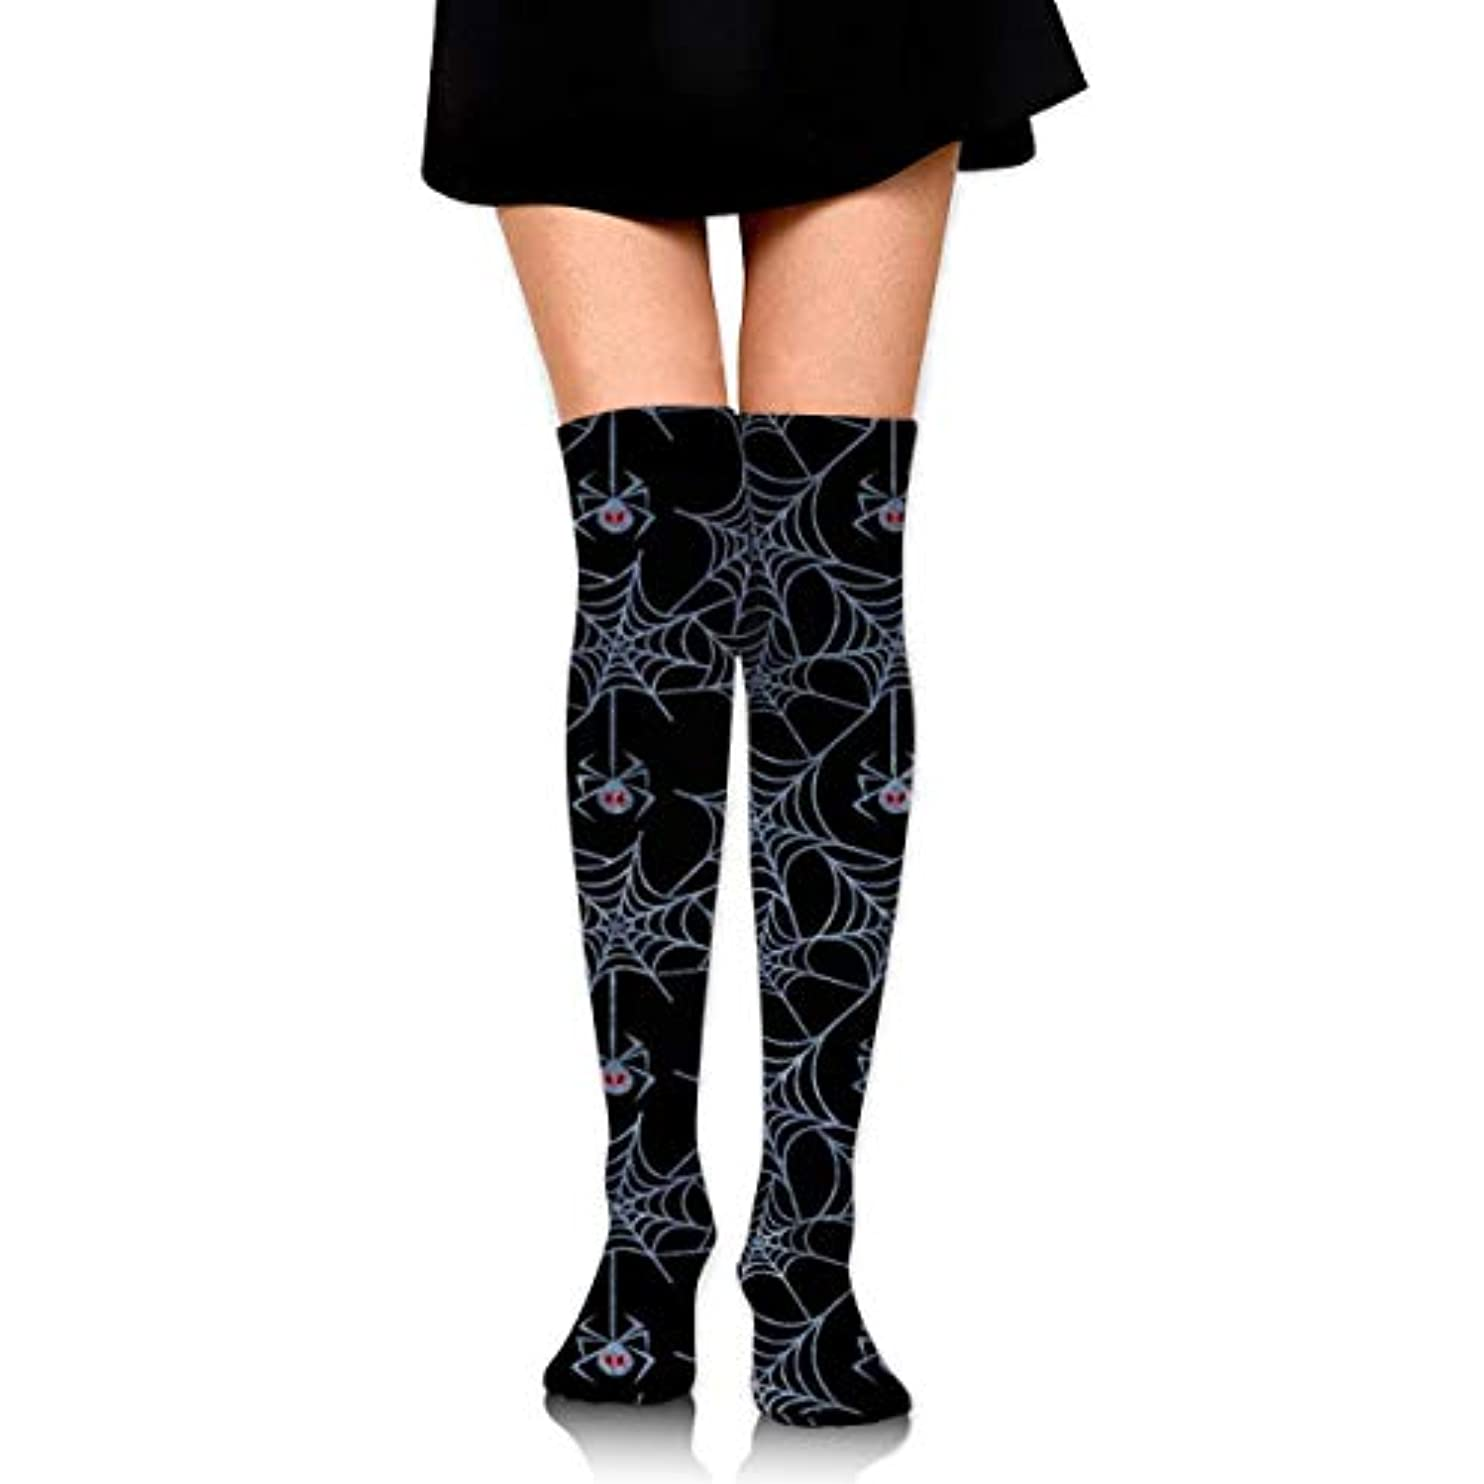 決定的想起協力するMKLOS 通気性 圧縮ソックス Breathable Extra Long Cotton Mid Thigh High Halloween Spider Web Black Exotic Psychedelic Print...